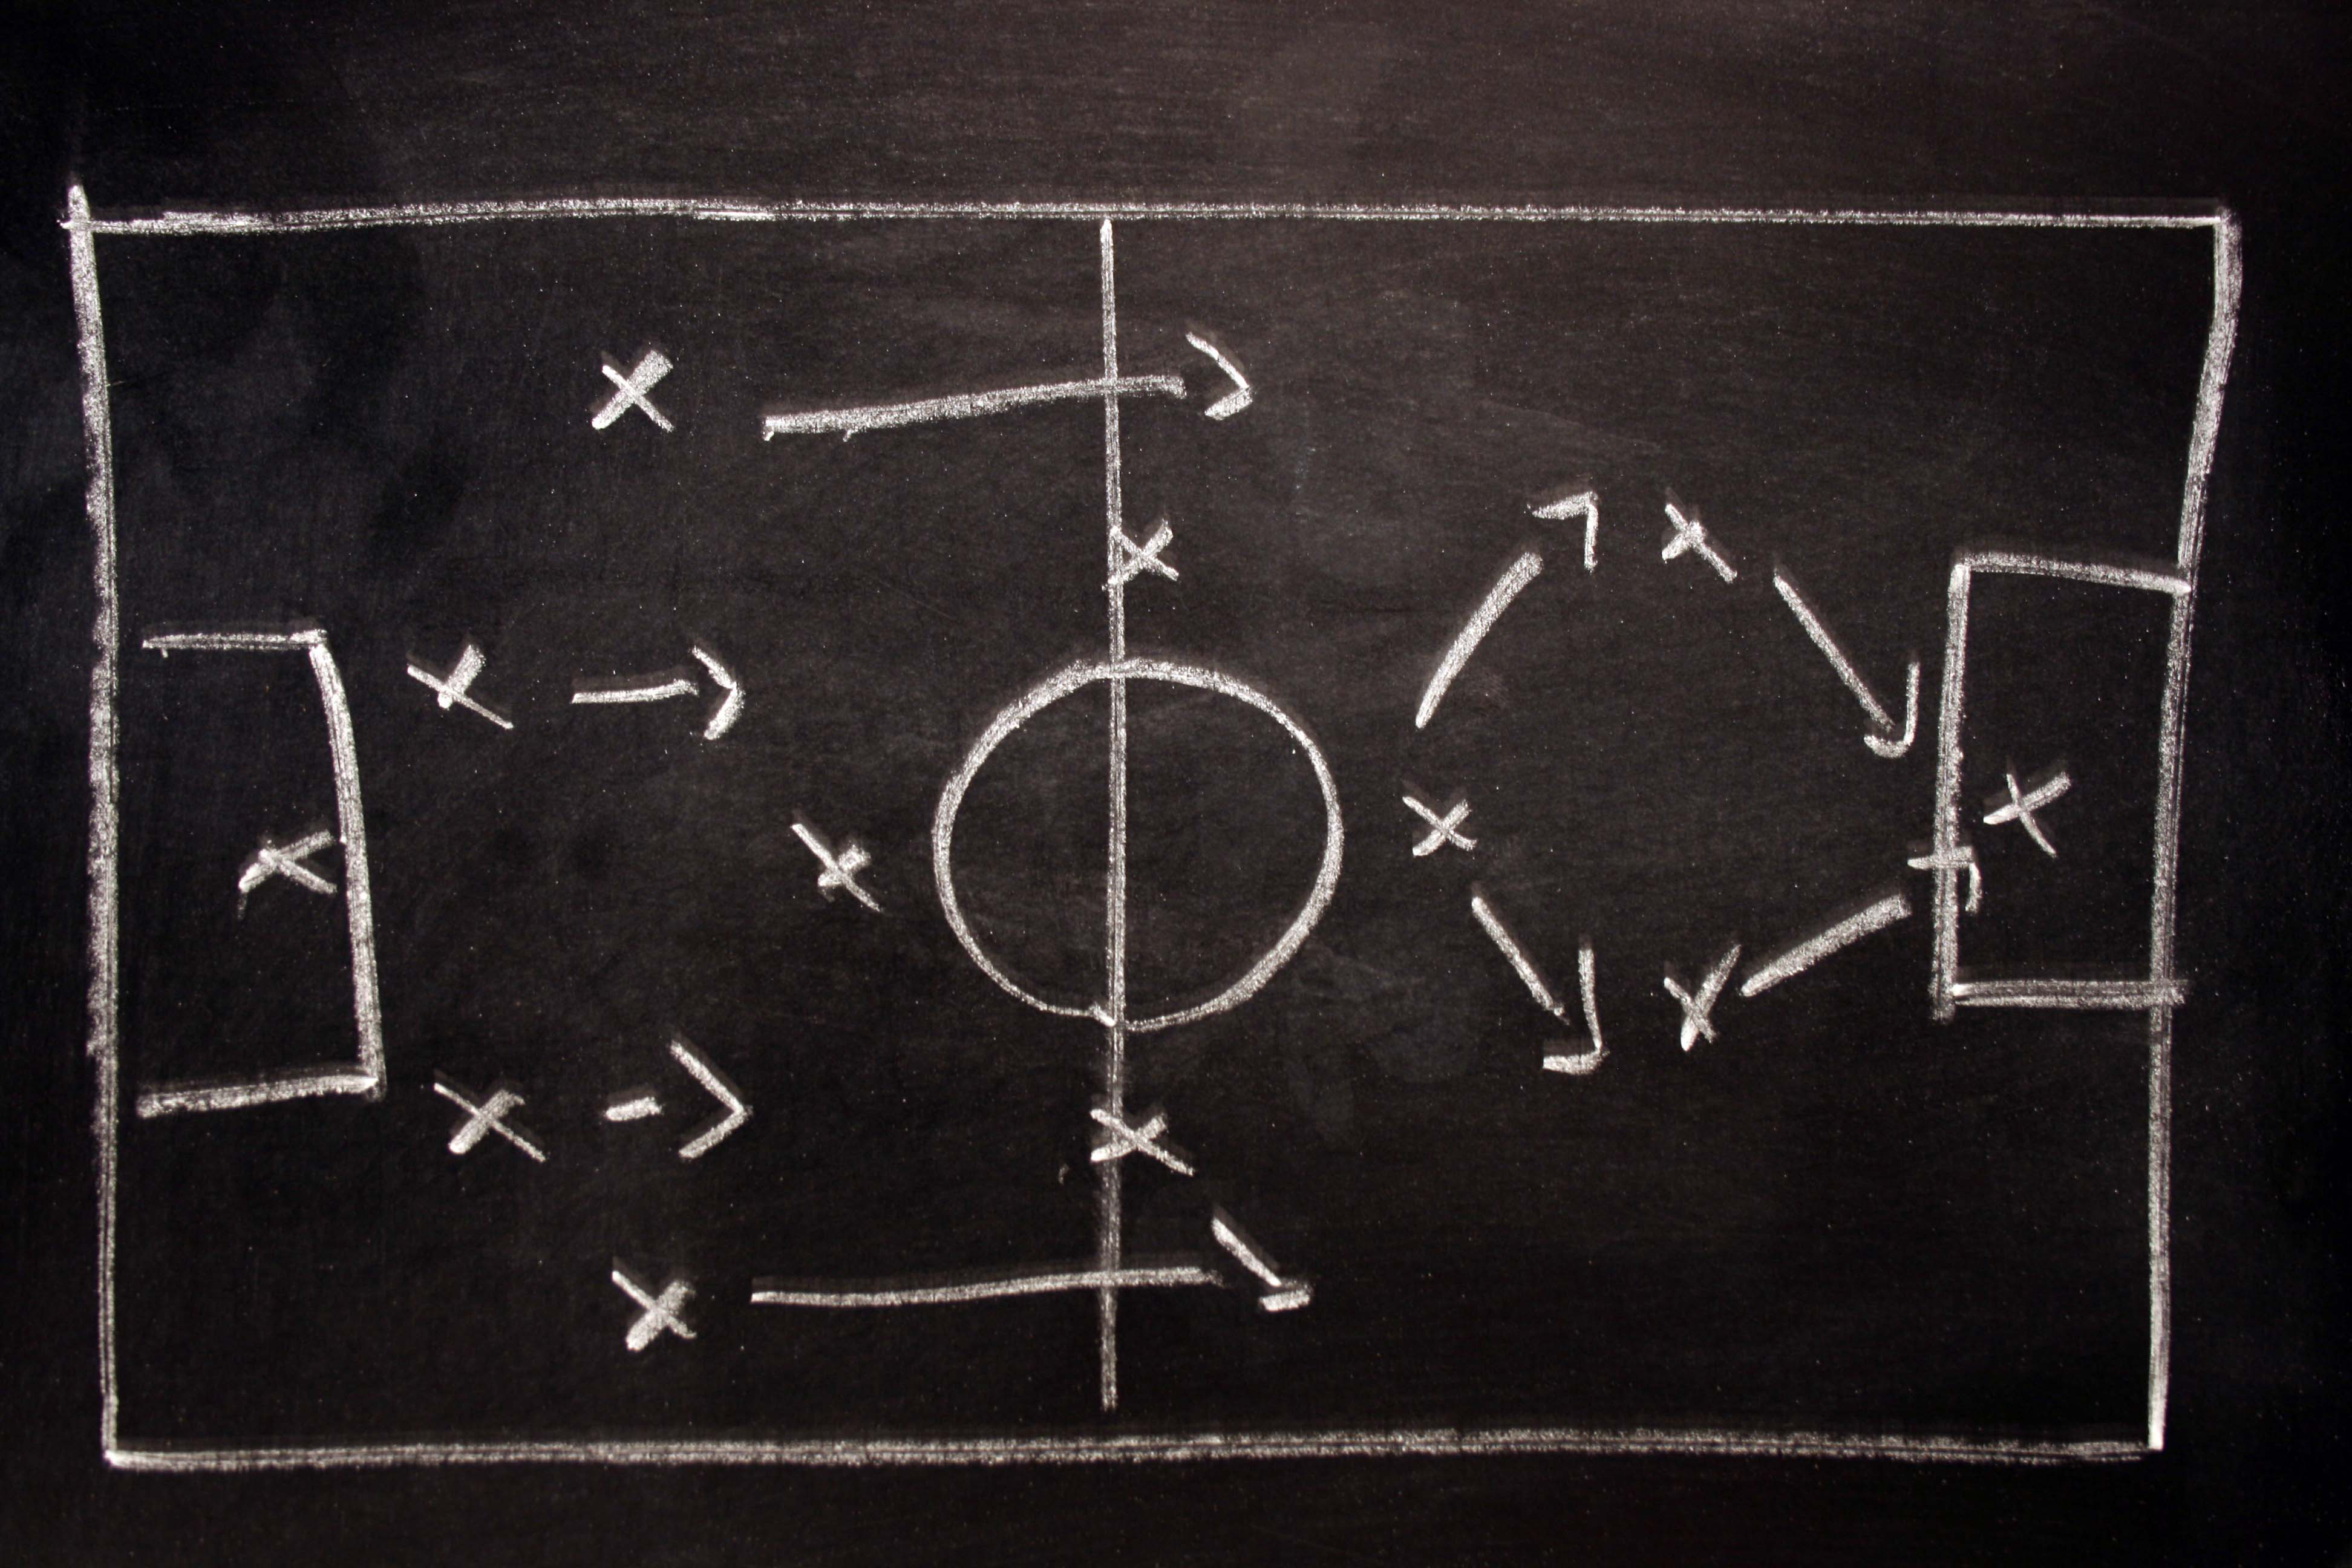 Strategie_Fussball